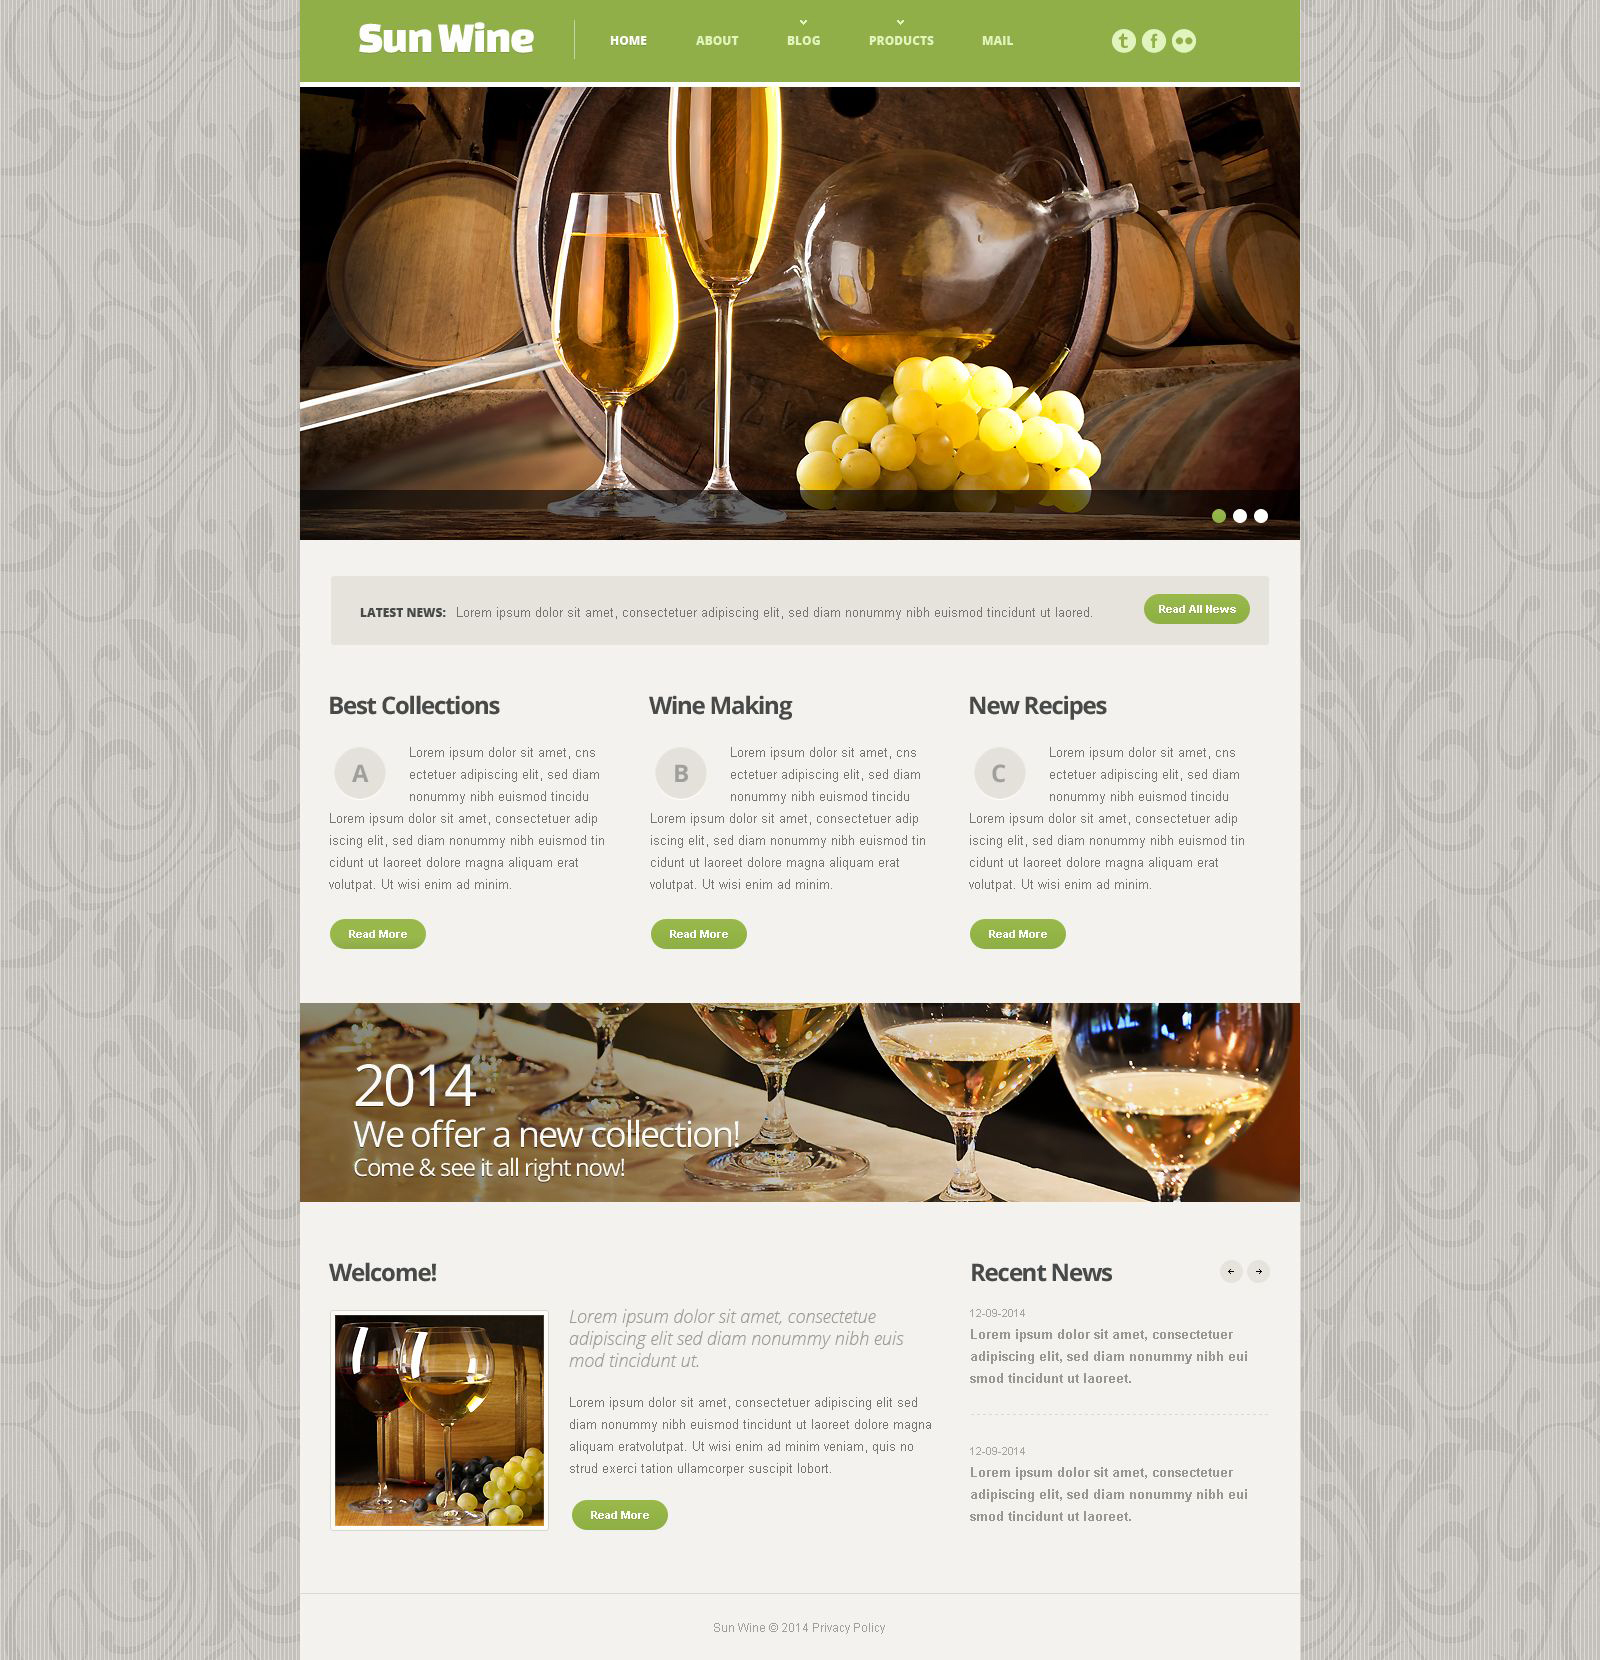 The Wine Blog Responsive Javascript Animated Design 54014, one of the best website templates of its kind (food & drink, most popular), also known as wine blog website template, post website template, winery website template, production website template, grape website template, collection website template, red website template, white rose website template, bubbly website template, kosher website template, Champagne dry website template, traditions website template, cabernet website template, sauvignon website template, chardonnay website template, Muscat Pinot Noir bottles website template, cork website template, Bordeaux Bourgogne glass website template, taste restaurant website template, alcohol website template, bottle website template, celebration website template, barrels and related with wine blog, post, winery, production, grape, collection, red, white rose, bubbly, kosher, Champagne dry, traditions, cabernet, sauvignon, chardonnay, Muscat Pinot Noir bottles, cork, Bordeaux Bourgogne glass, taste restaurant, alcohol, bottle, celebration, barrels, etc.